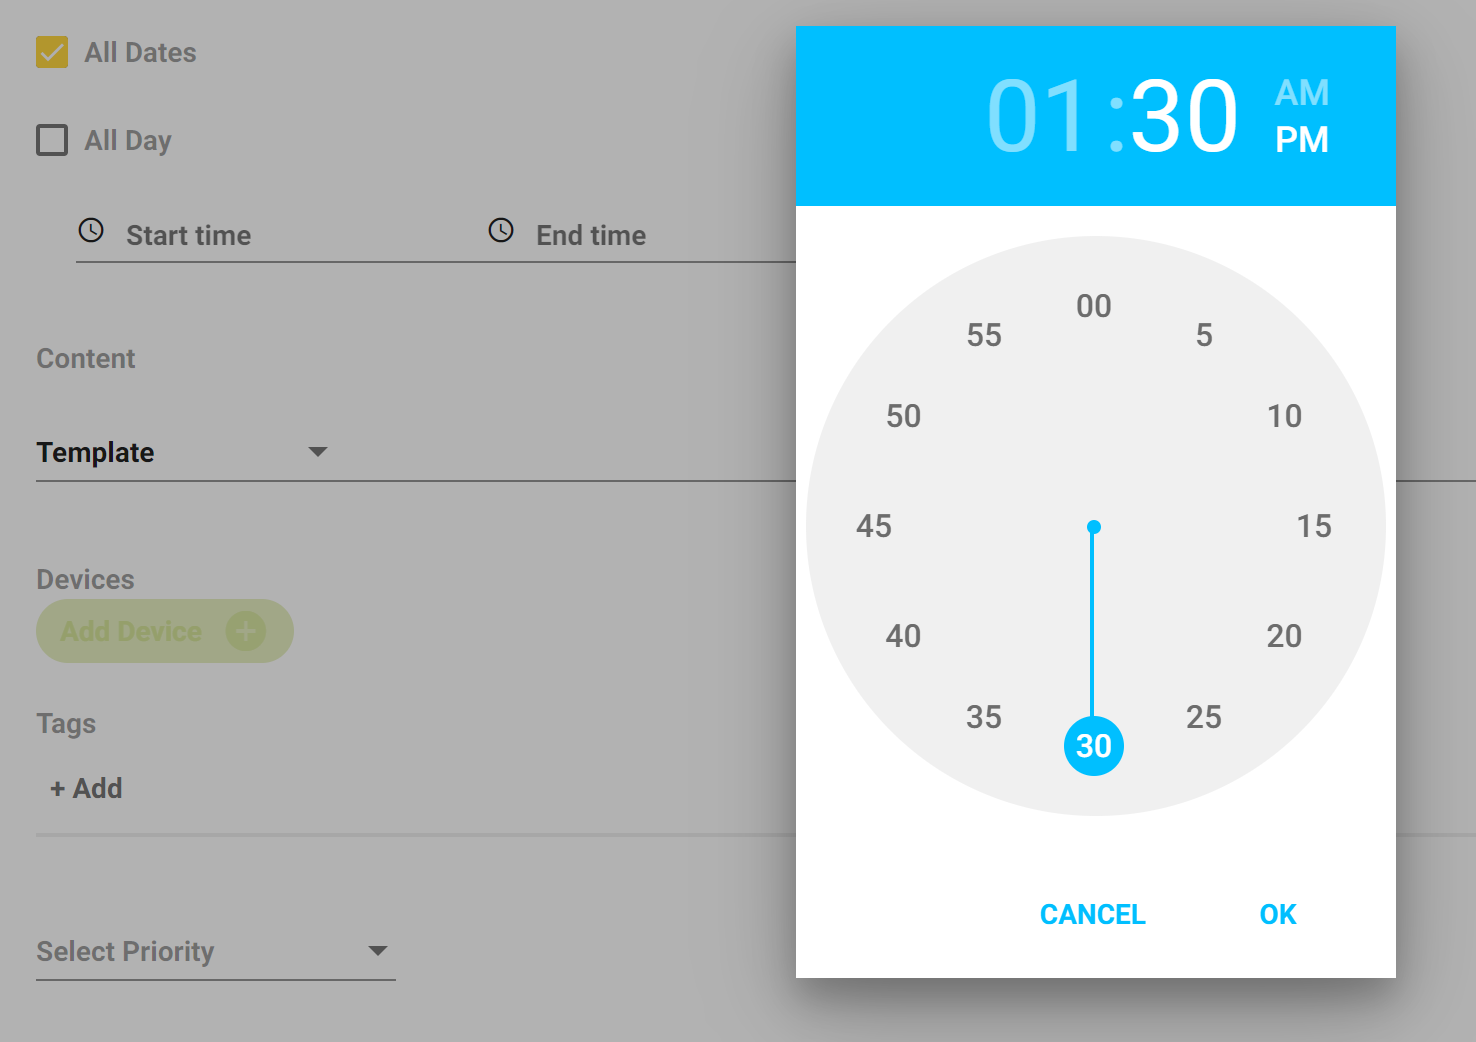 AwesomeScreenshot-as1-reveldigital-schedules-new_scheduleTypeId_Template-2019-07-30_12_26.png